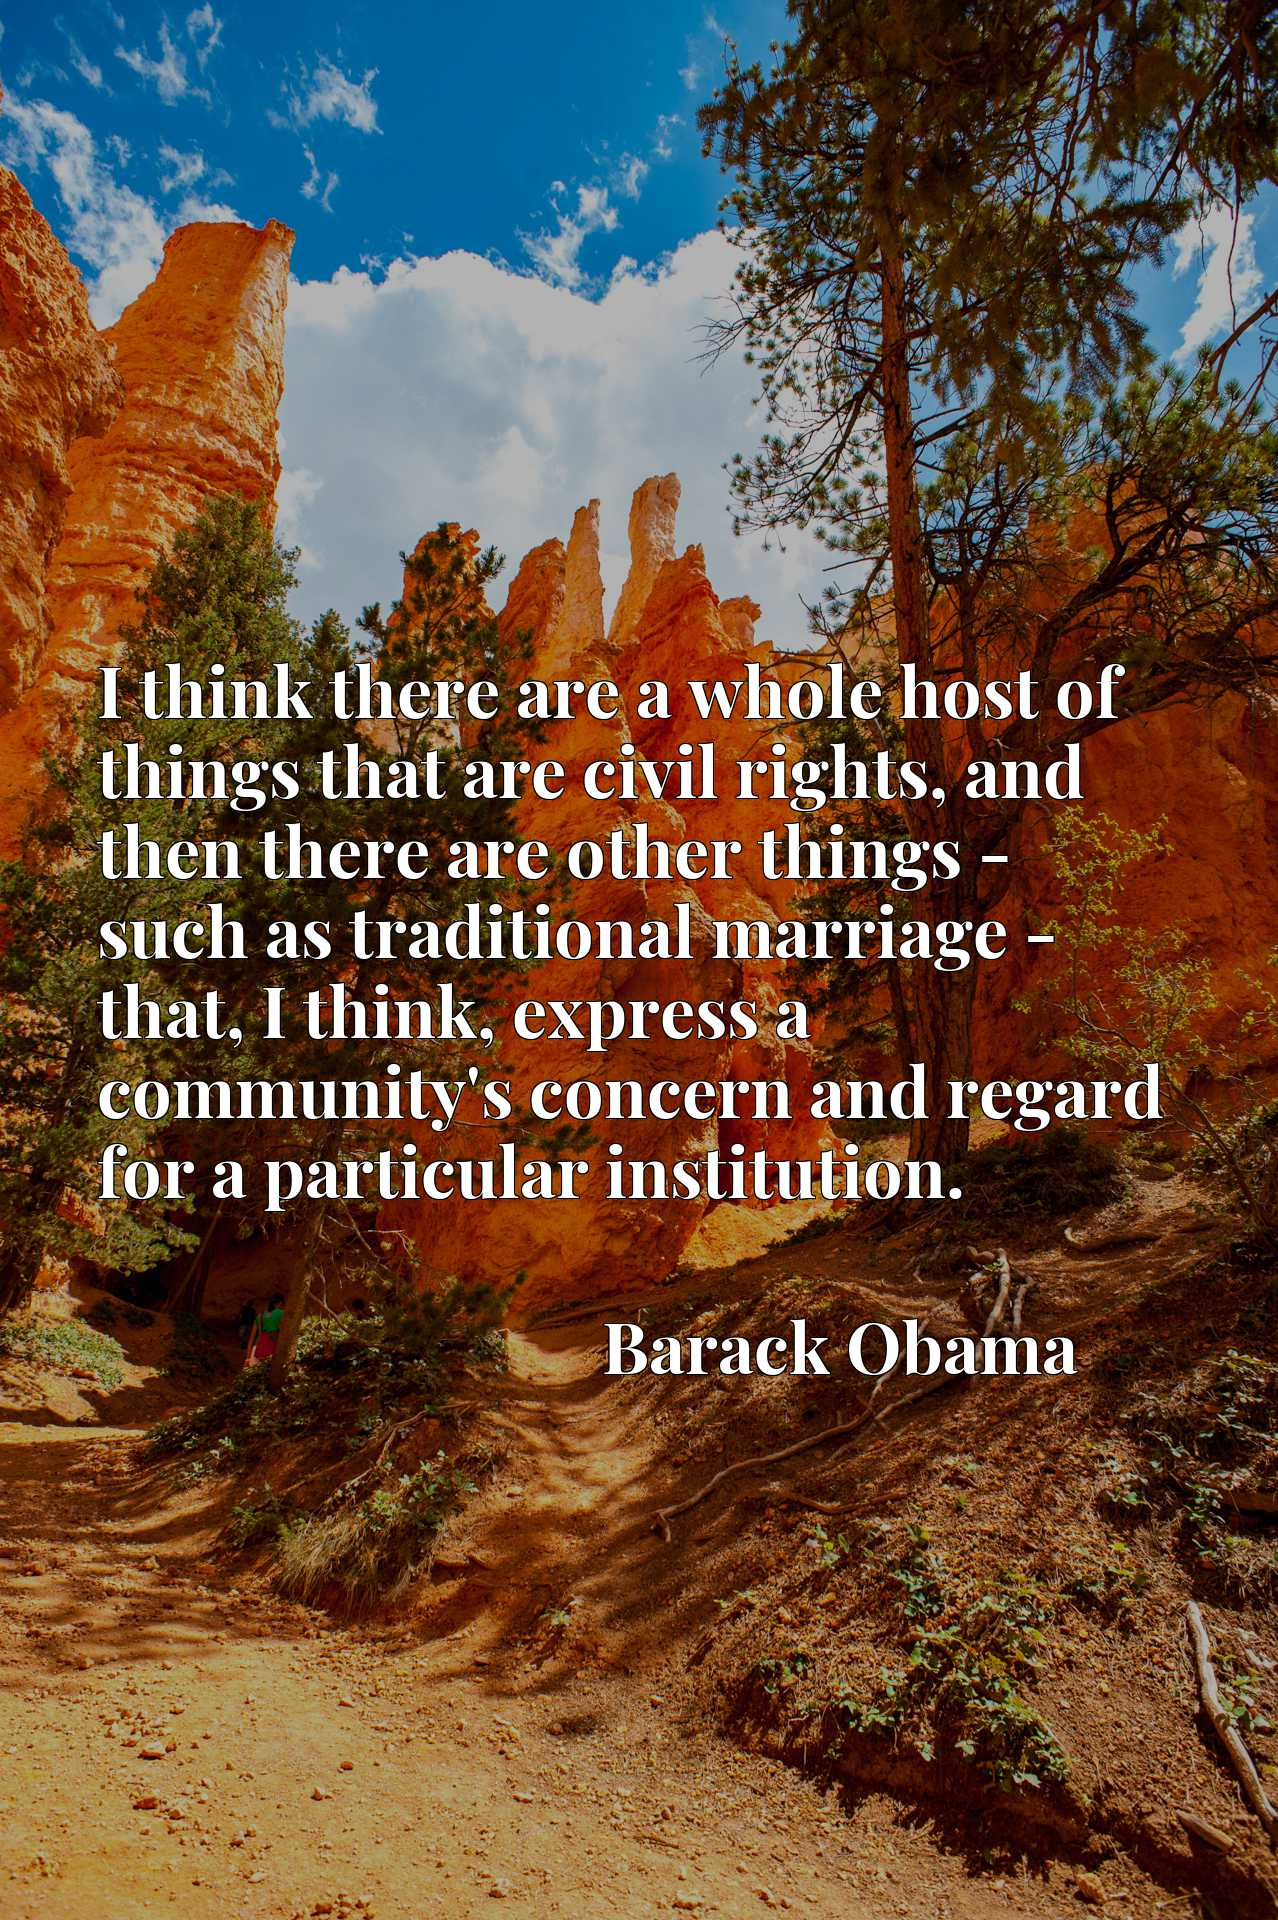 Quote Picture :I think there are a whole host of things that are civil rights, and then there are other things - such as traditional marriage - that, I think, express a community's concern and regard for a particular institution.